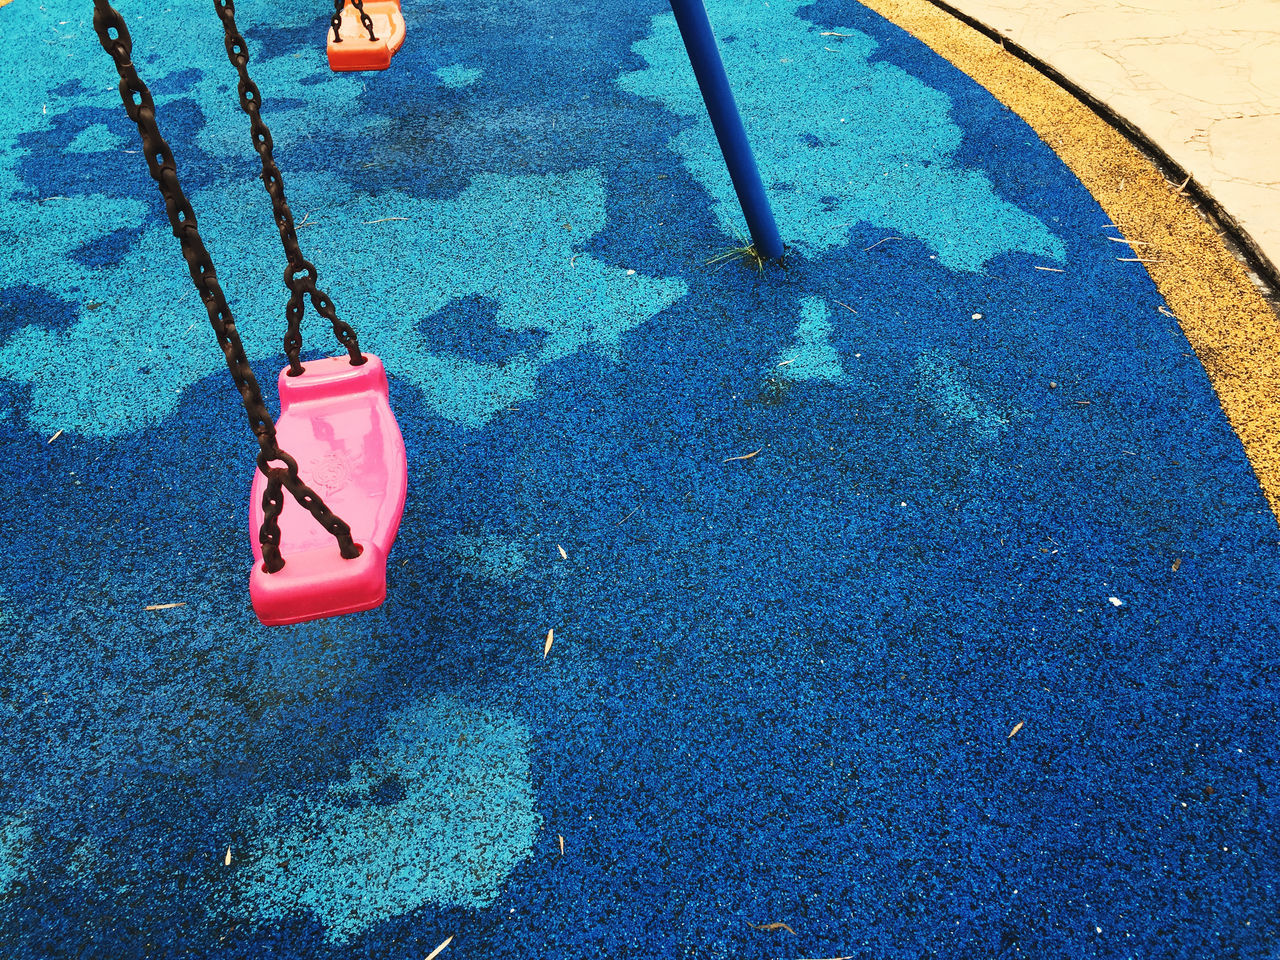 Blue Close-up Day Equipment Flooring Funtime High Angle View Holidays Kids No People Outdoor Outdoors Playground Playgrounds Recreation  Red Swing Vacation